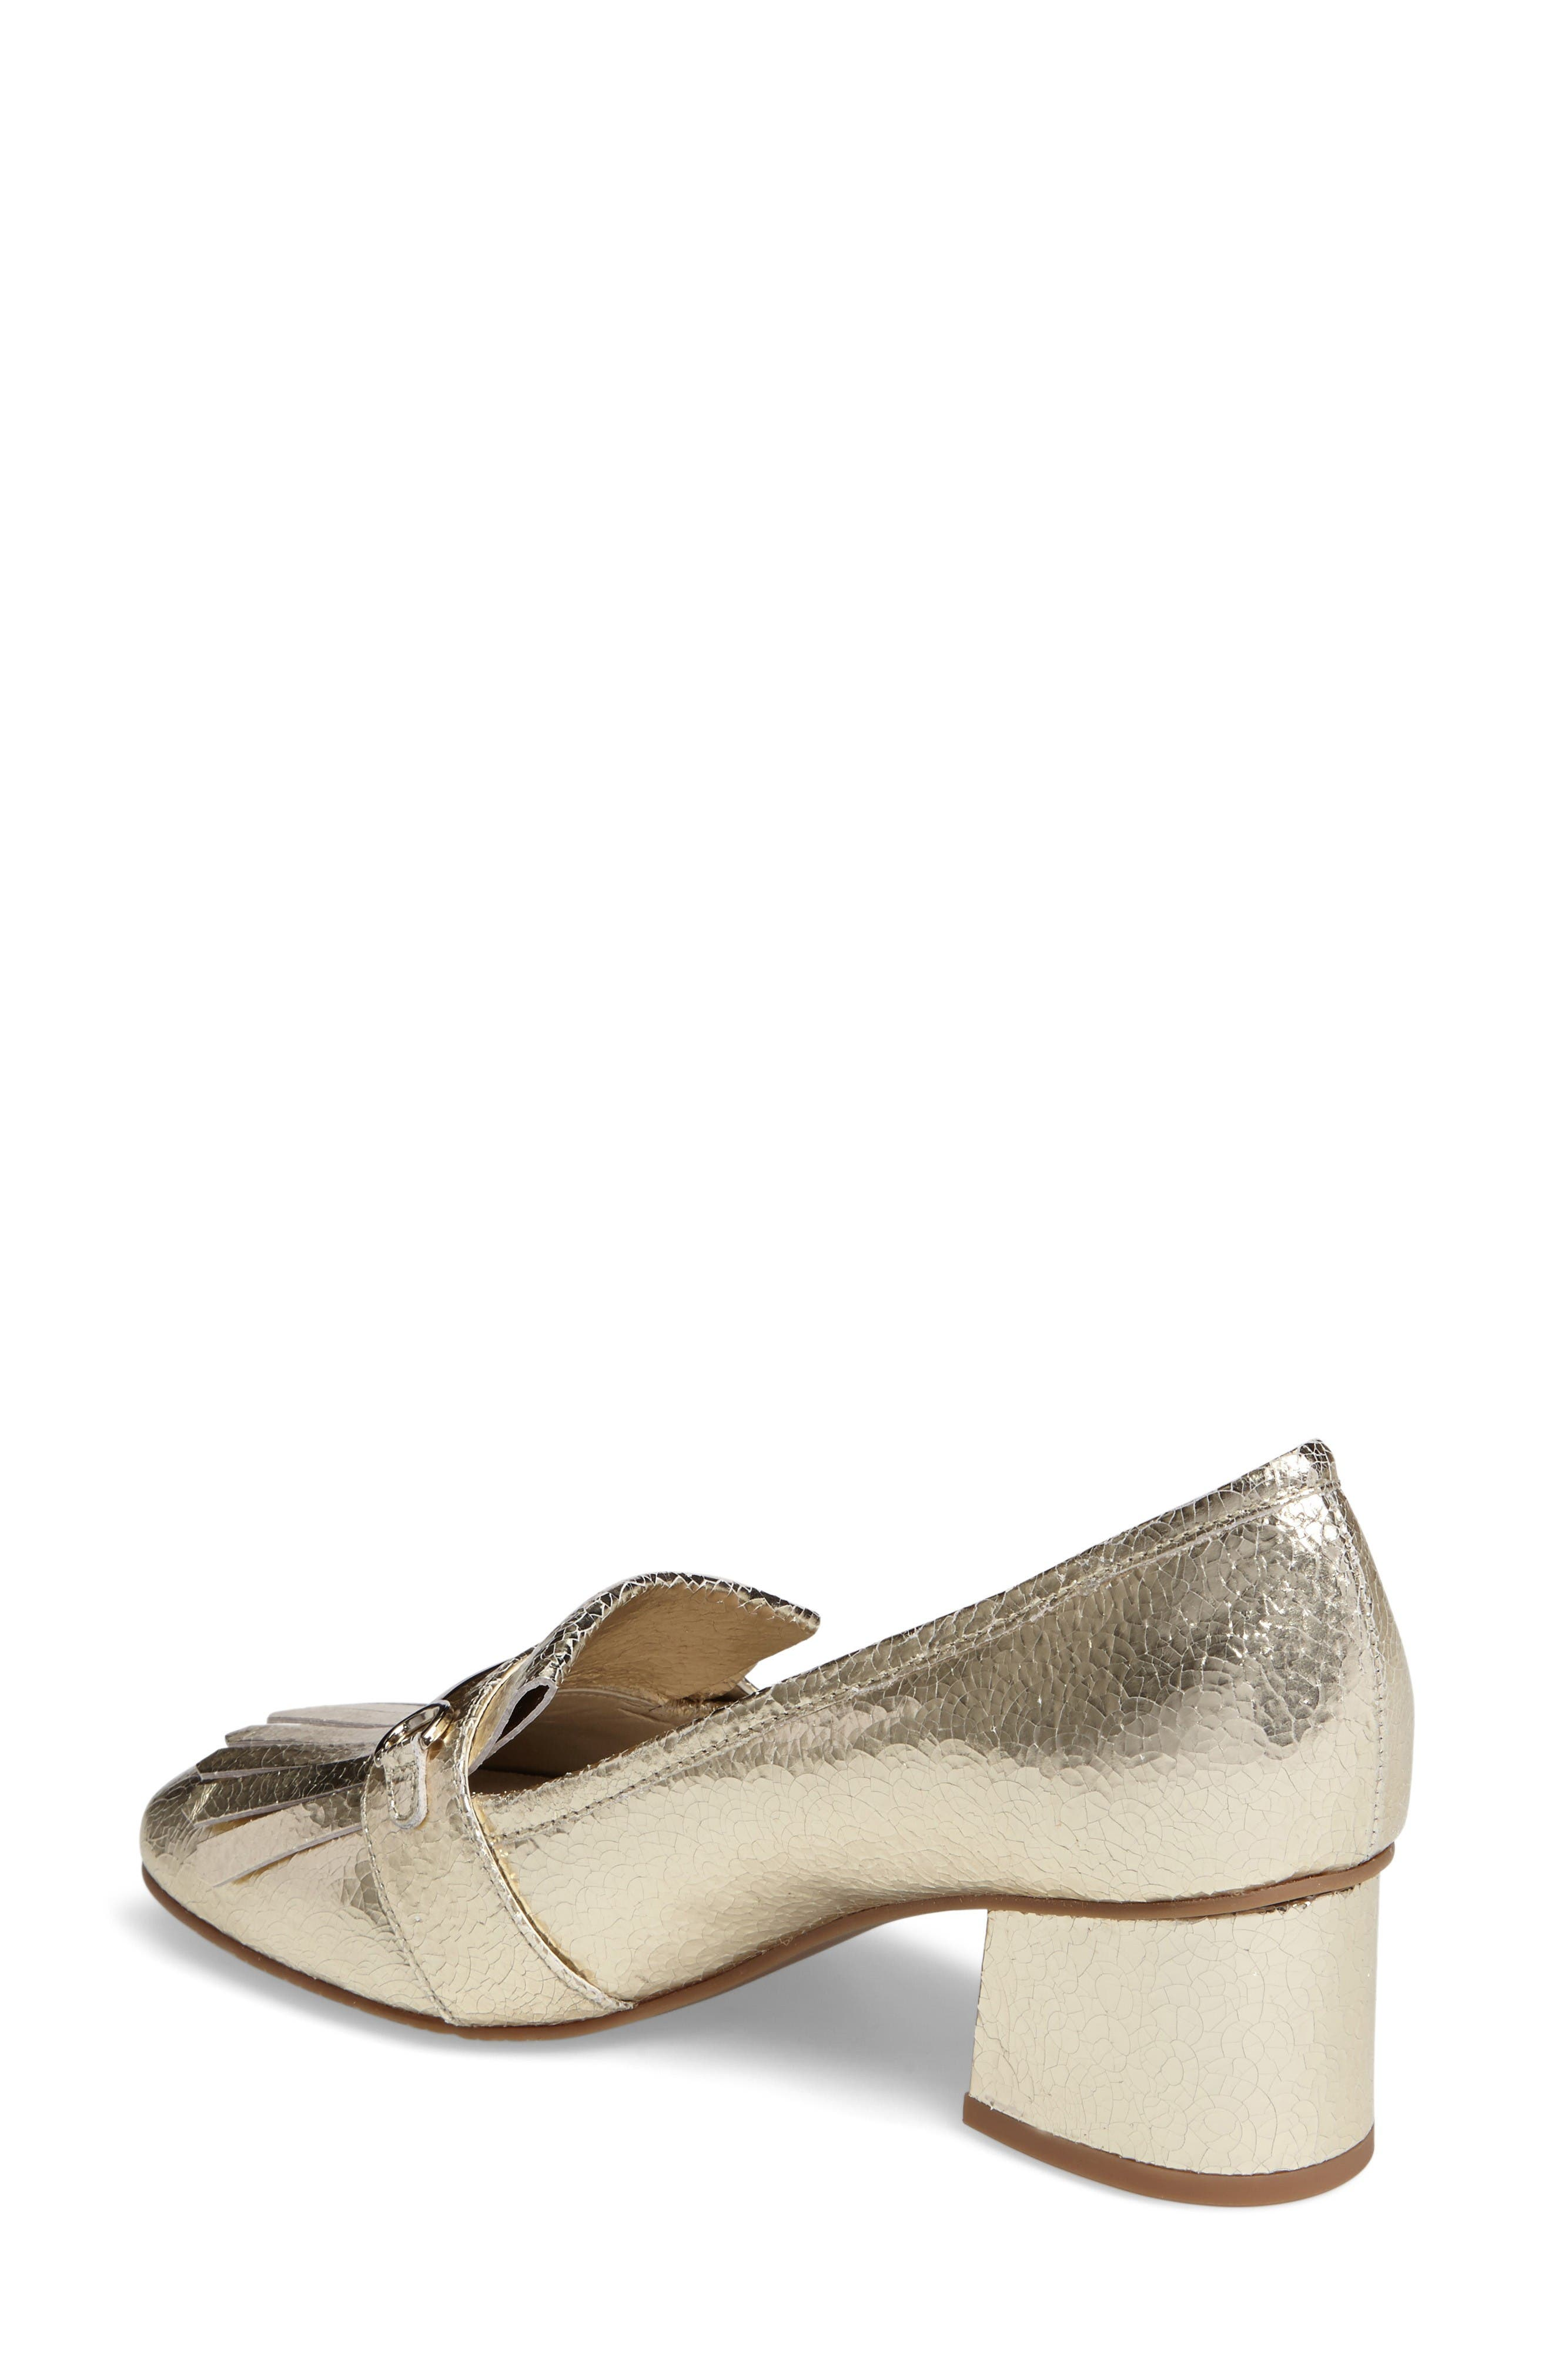 Alternate Image 2  - BP. Molley Loafer Pump (Women)